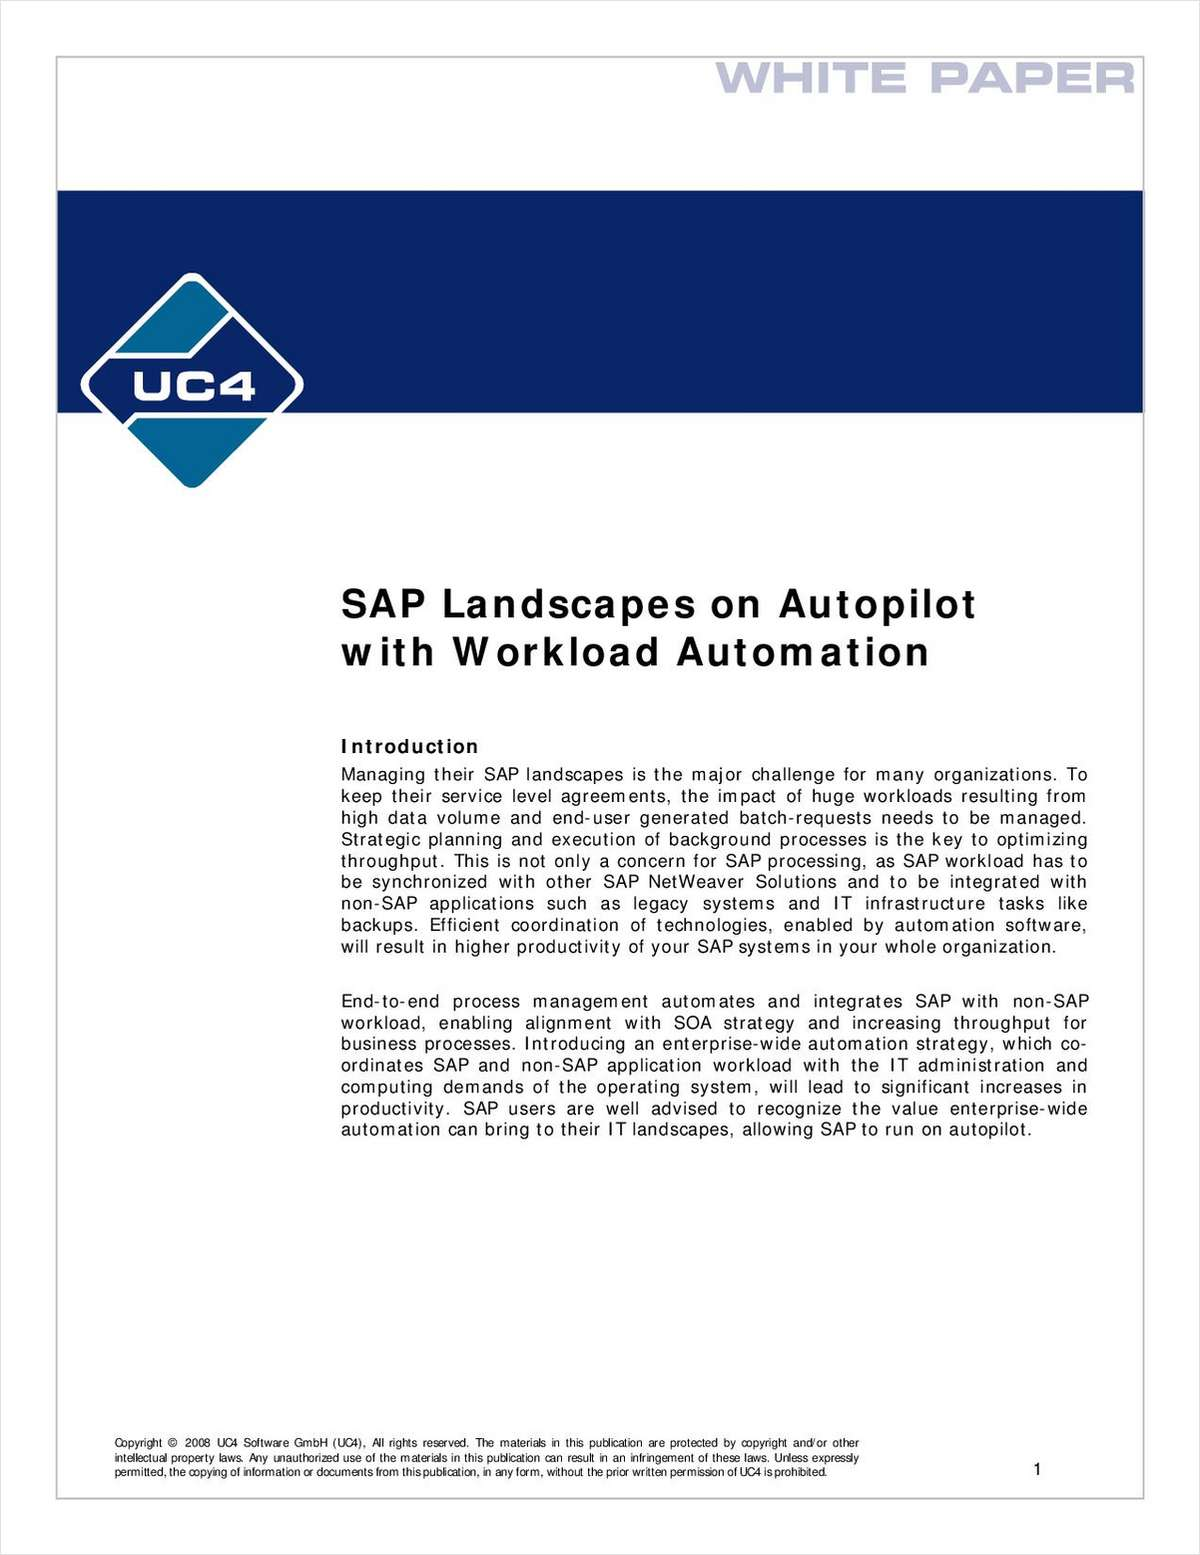 SAP Landscapes on Autopilot with Workload Automation